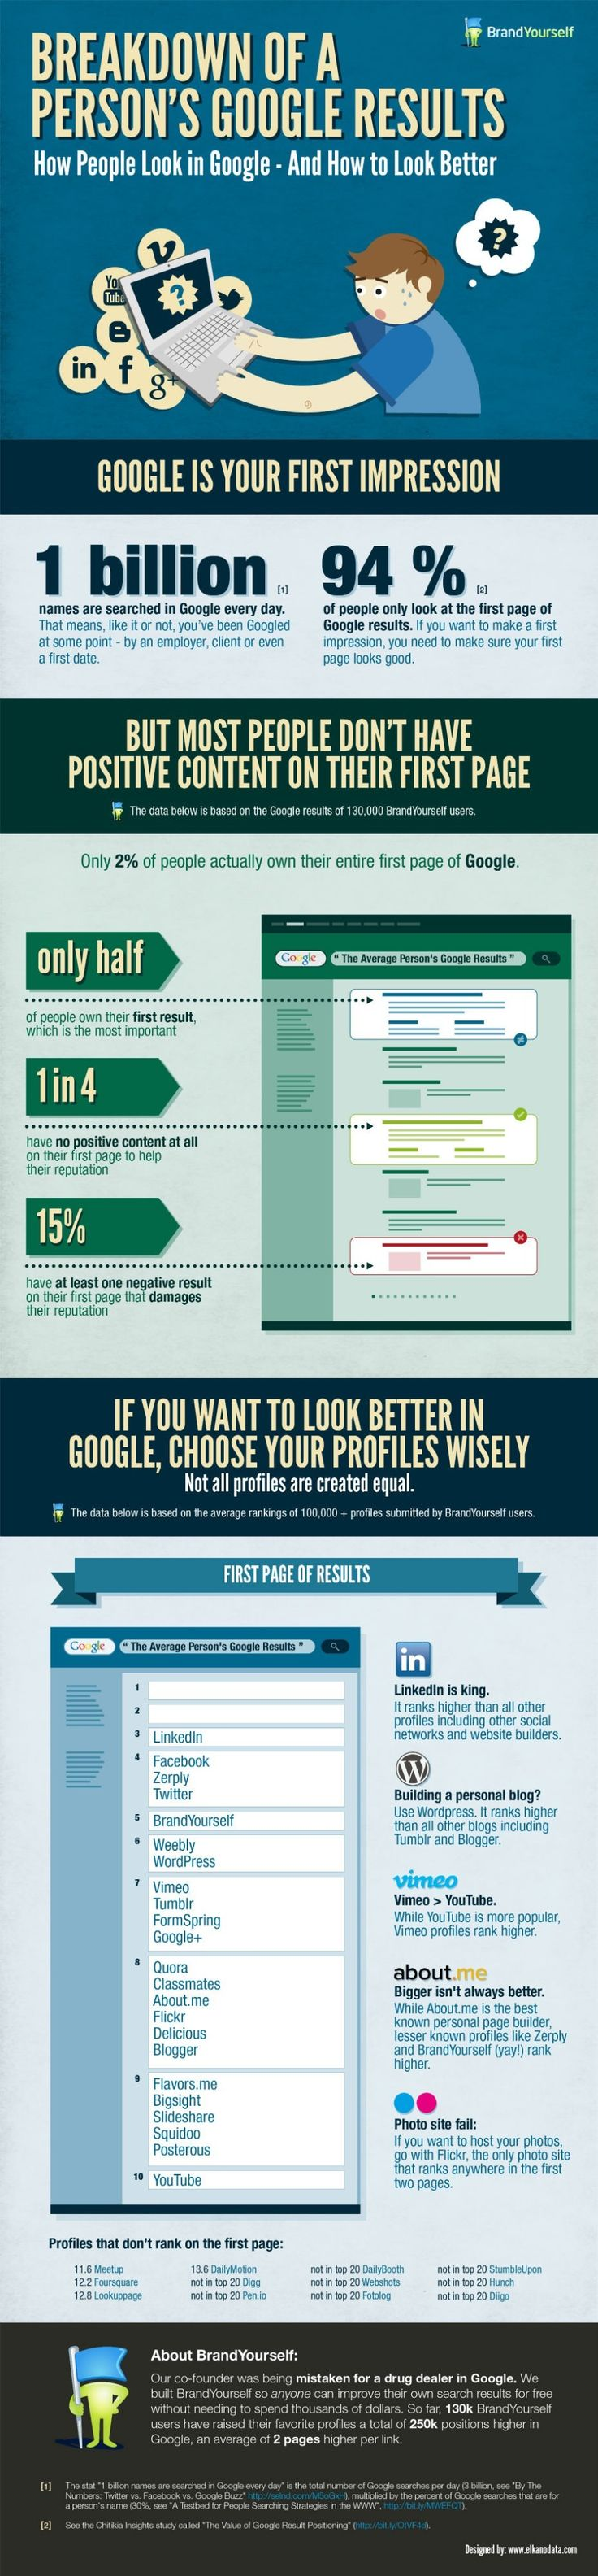 How to Rank Better on Google: SEO Tips [INFOGRAPHIC]